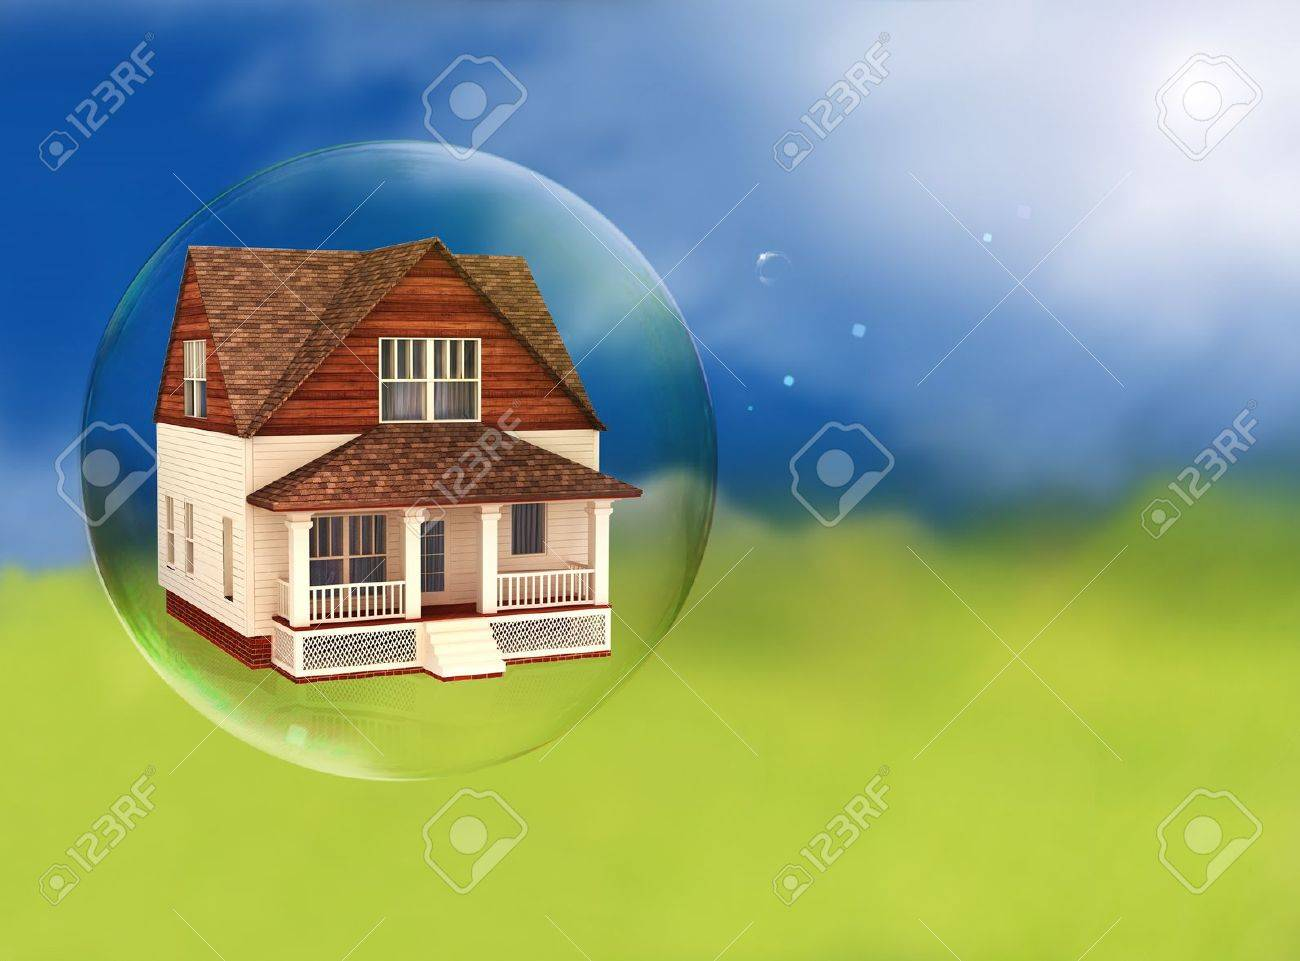 House in a bubble, room for text or copy space Stock Photo - 19585922